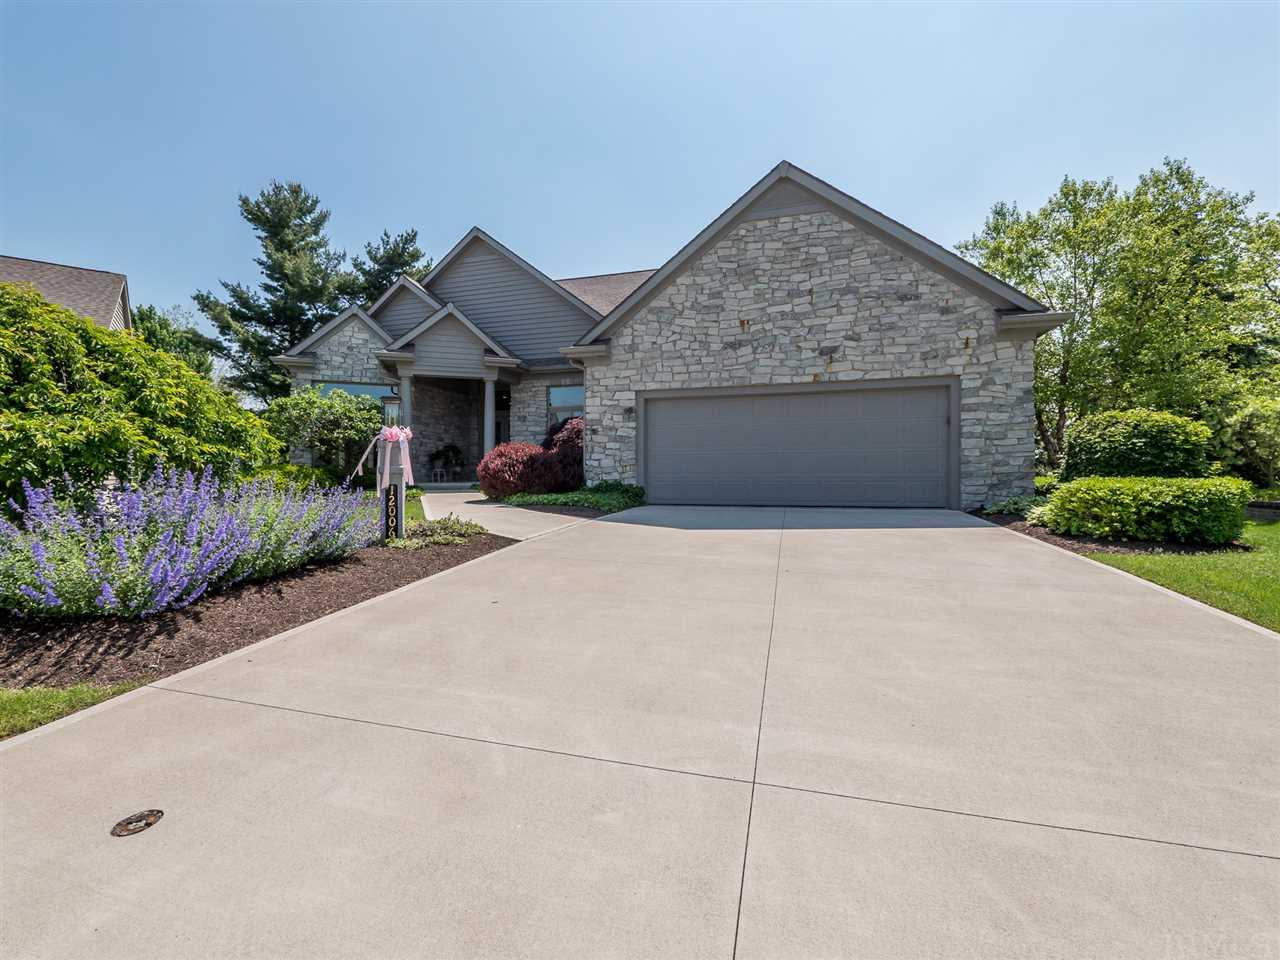 12006 Sycamore Lakes Court, Fort Wayne, IN 46814